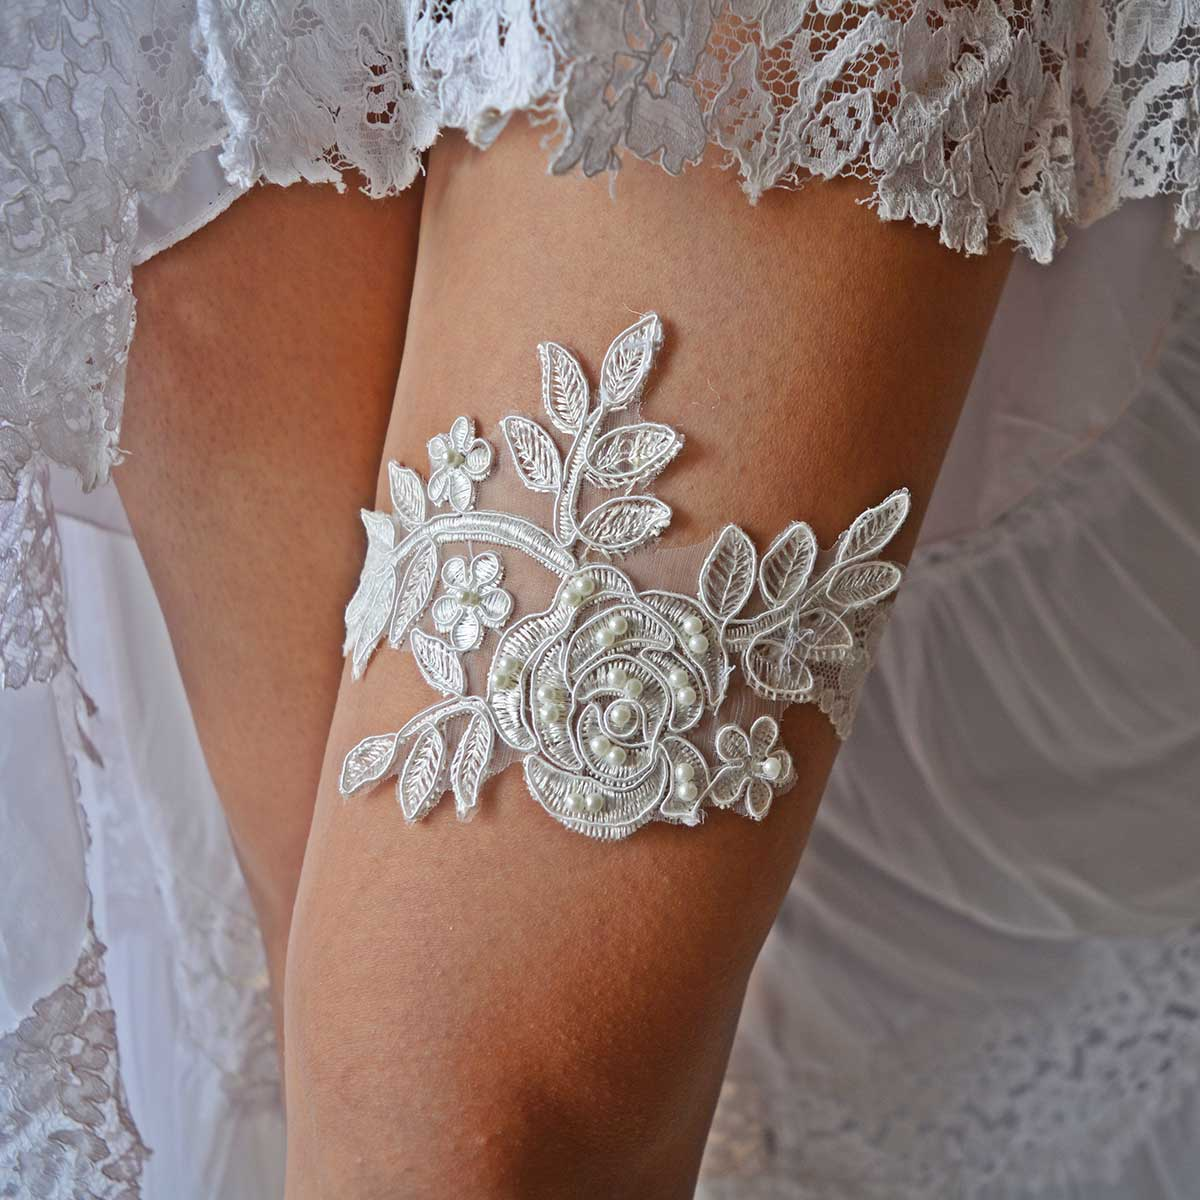 Off White Bridal Garter With Applique Lace And White Pearls - Wedding Garter - SuzannaM Designs